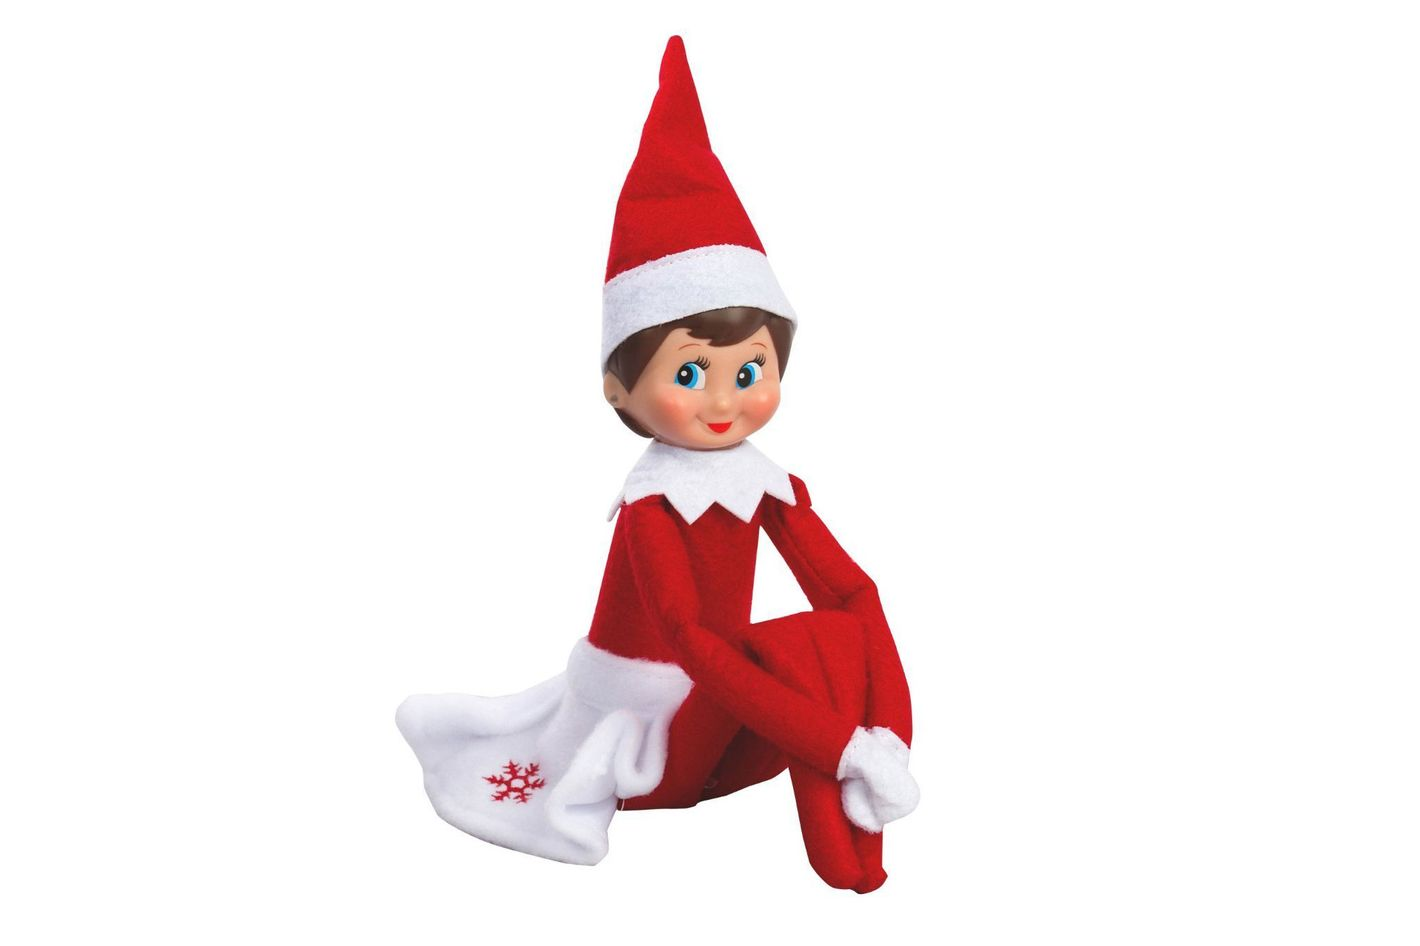 Christmas Reminder: Please Don\'t Call 911 About Elf on the Shelf